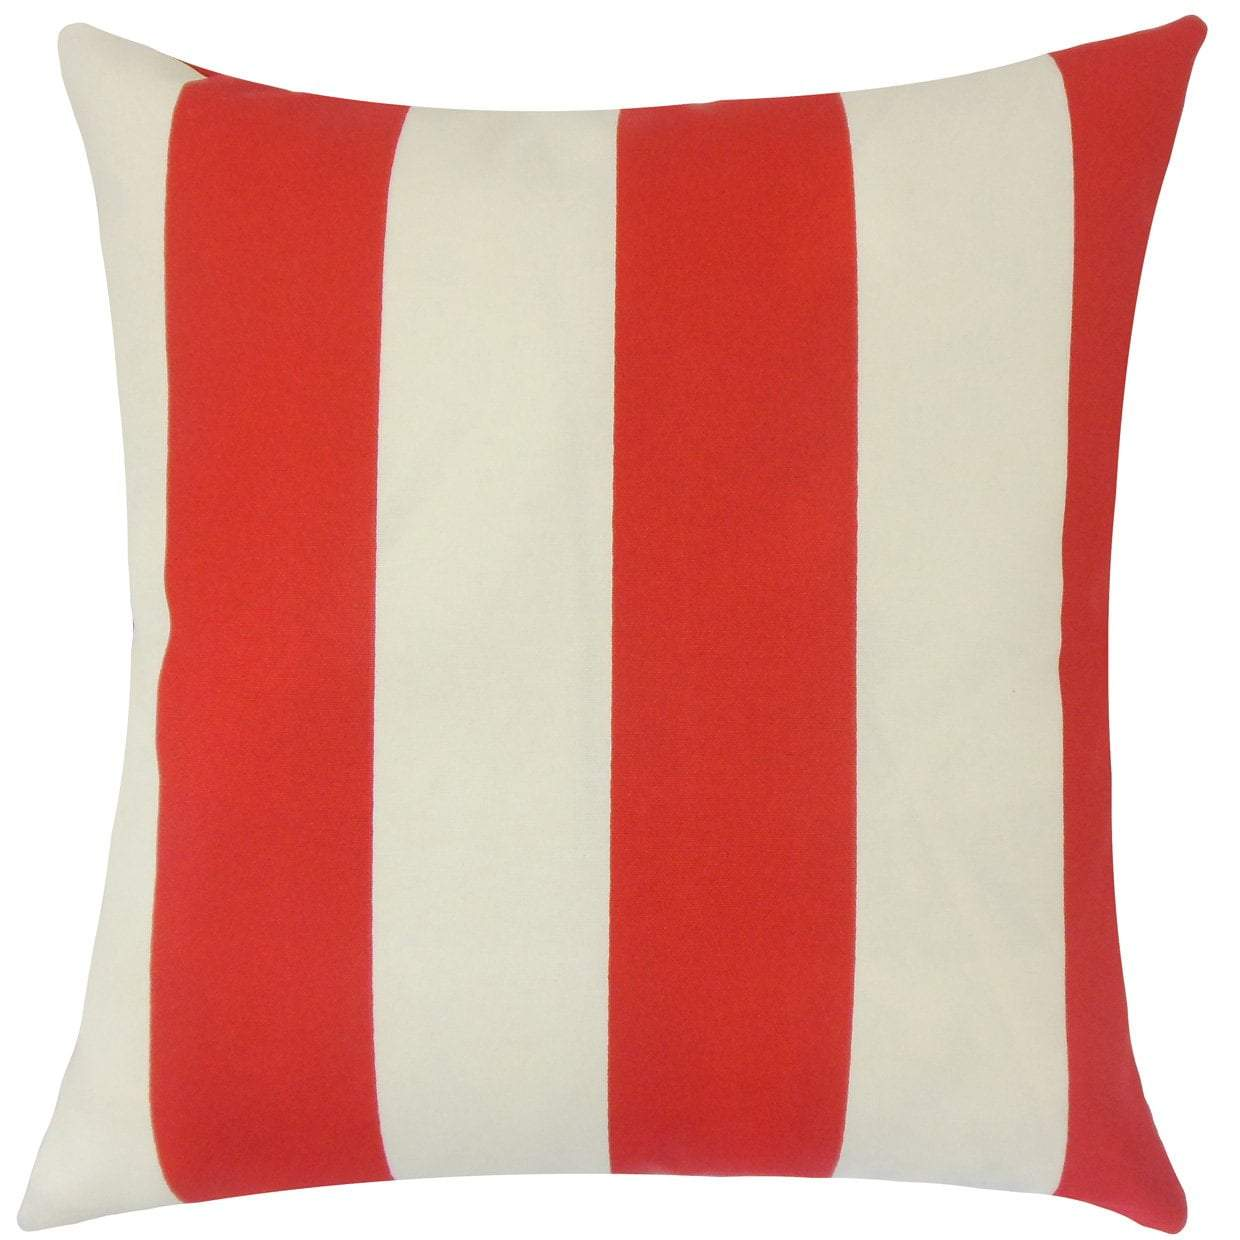 Red Synthetic Striped Contemporary Throw Pillow Cover